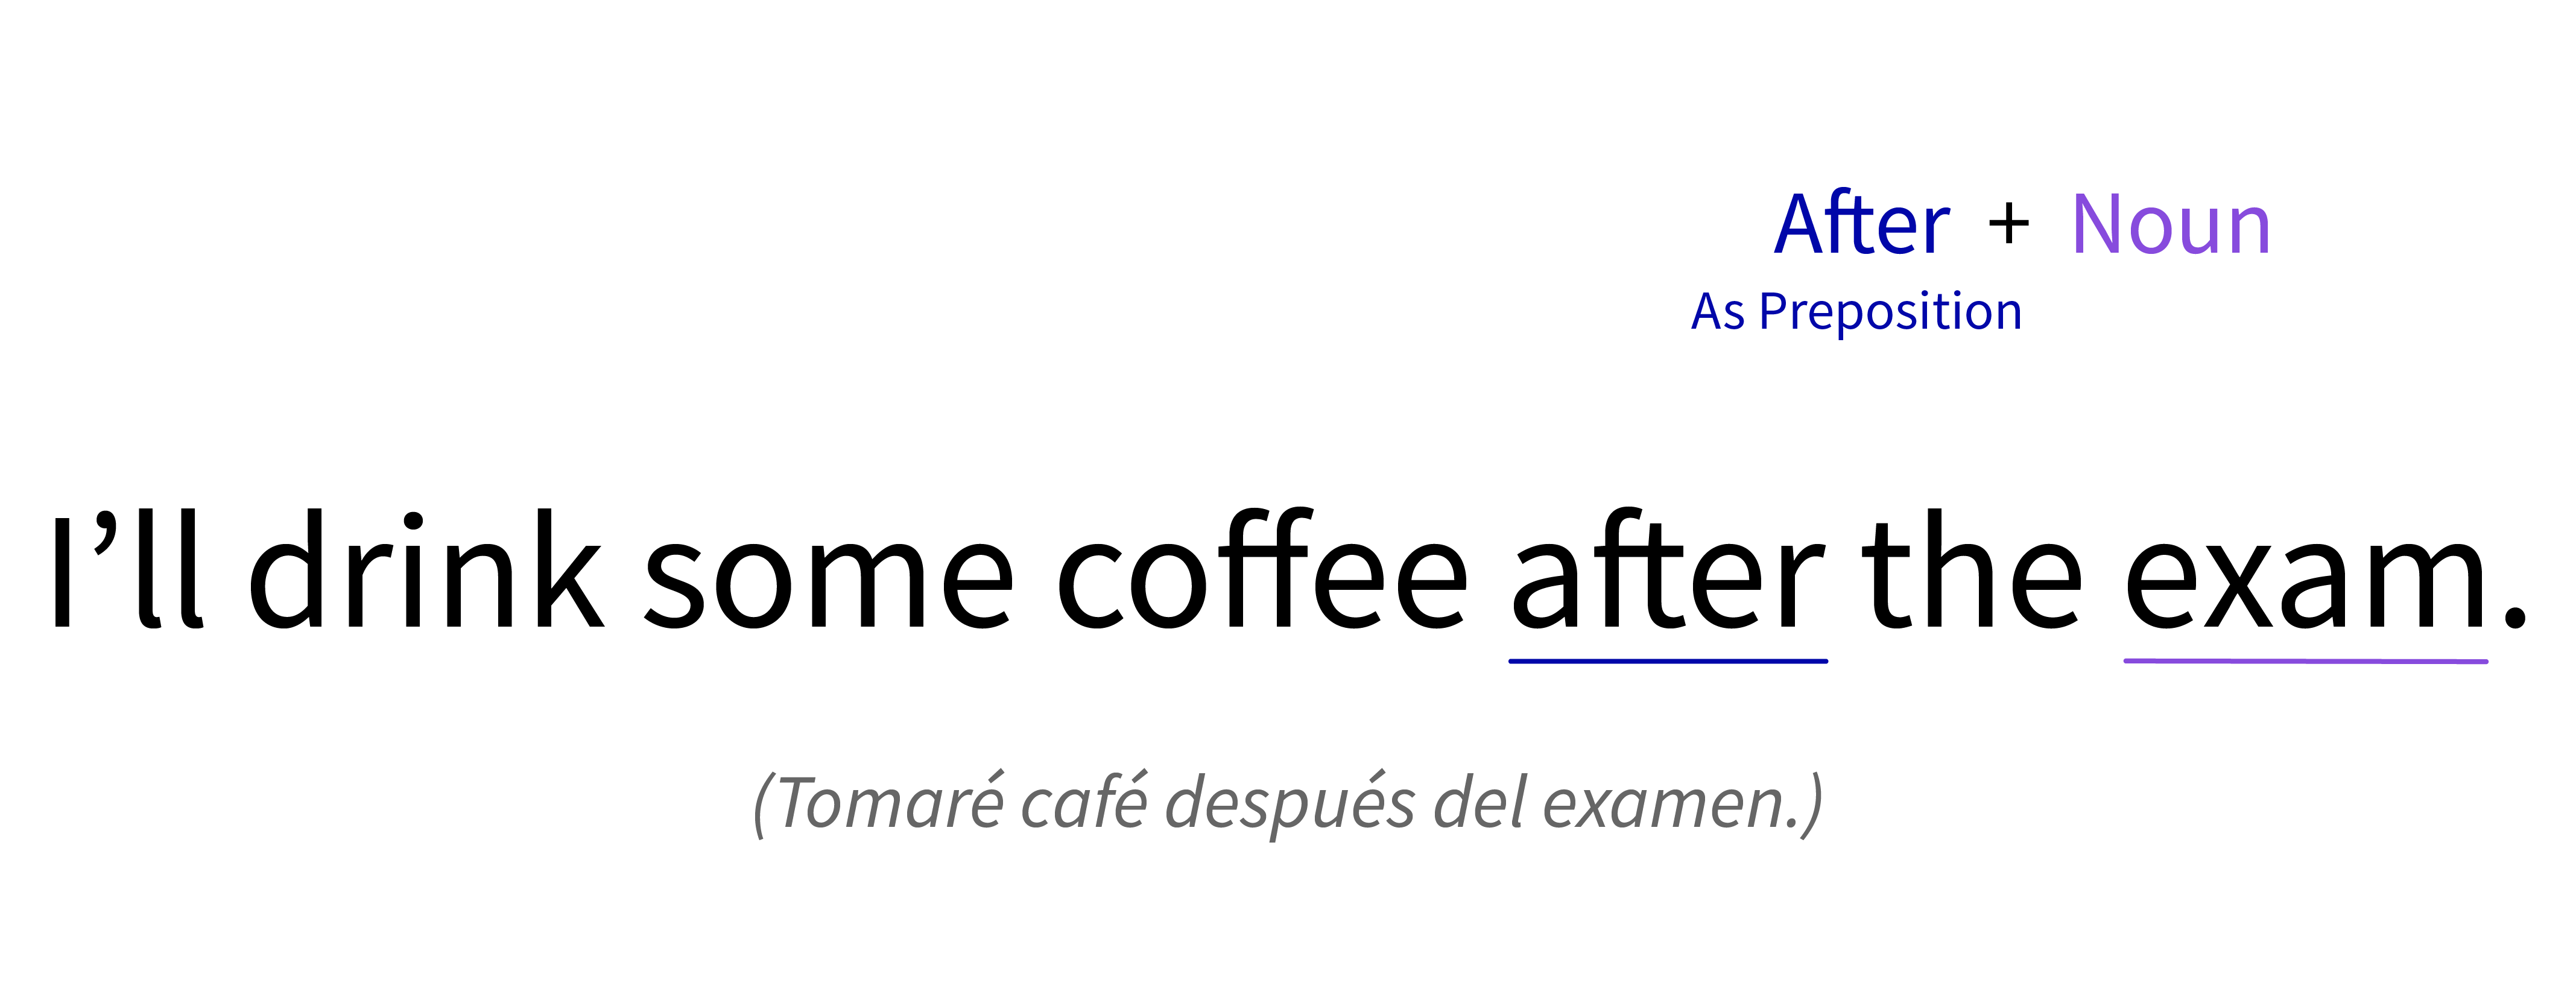 After as preposition example